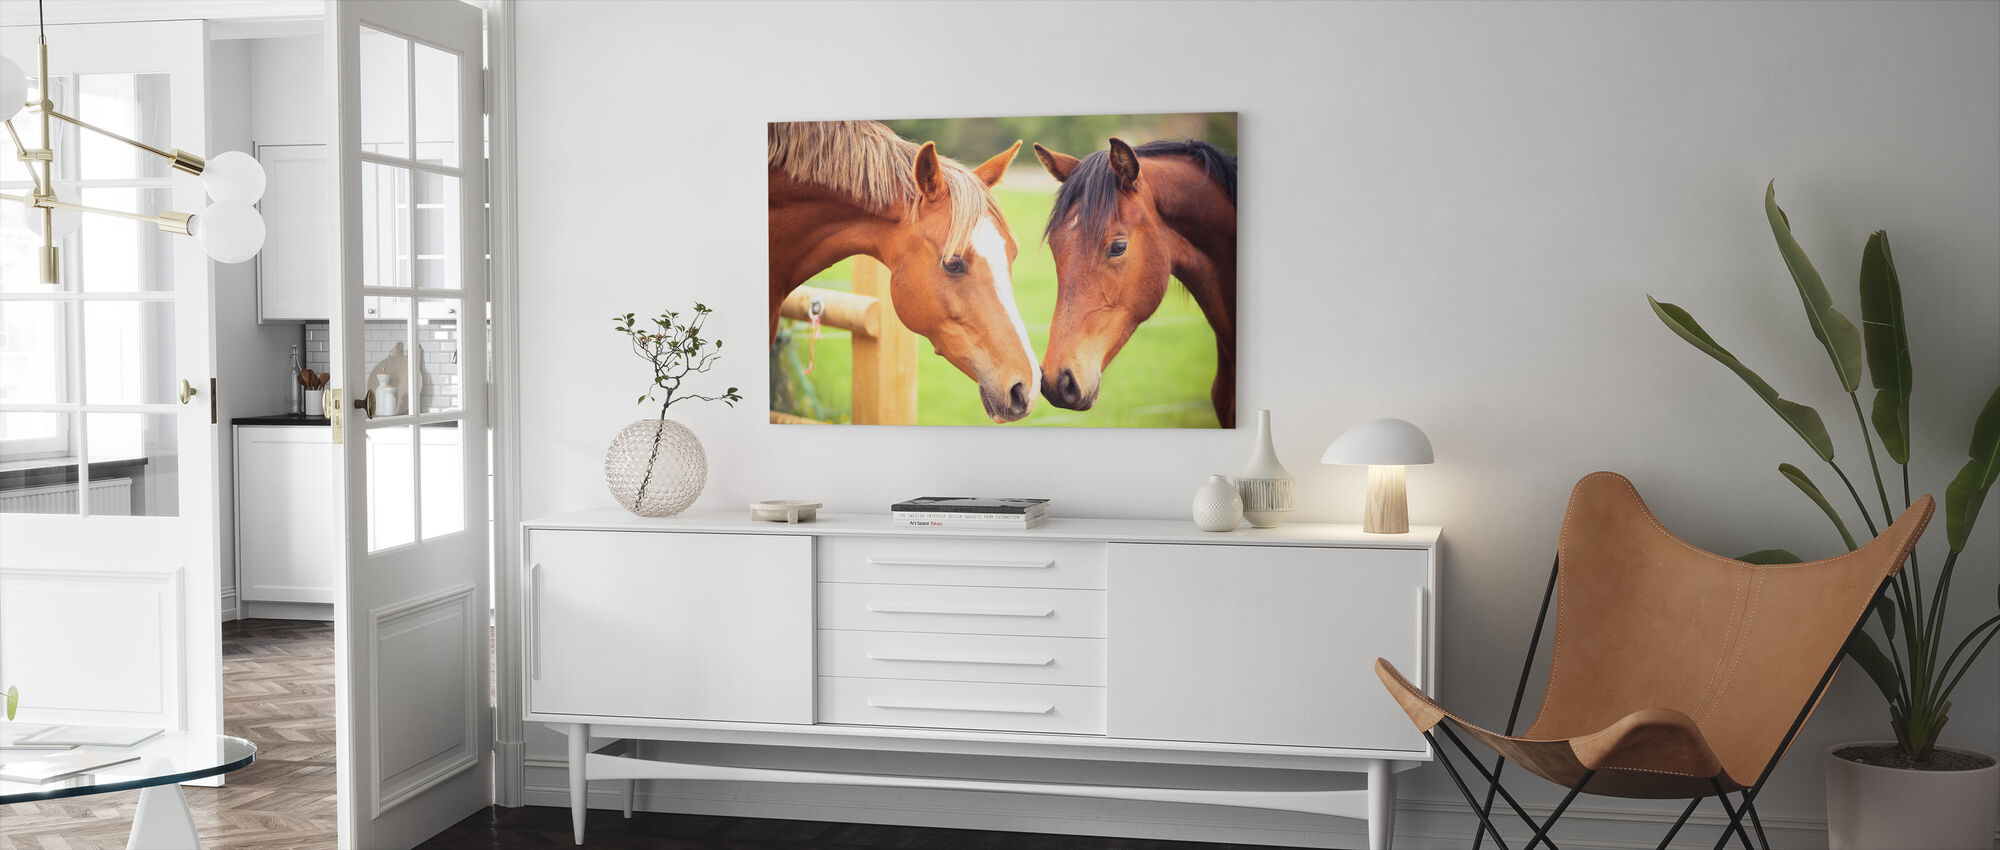 Becoming Friends - Canvas print - Living Room